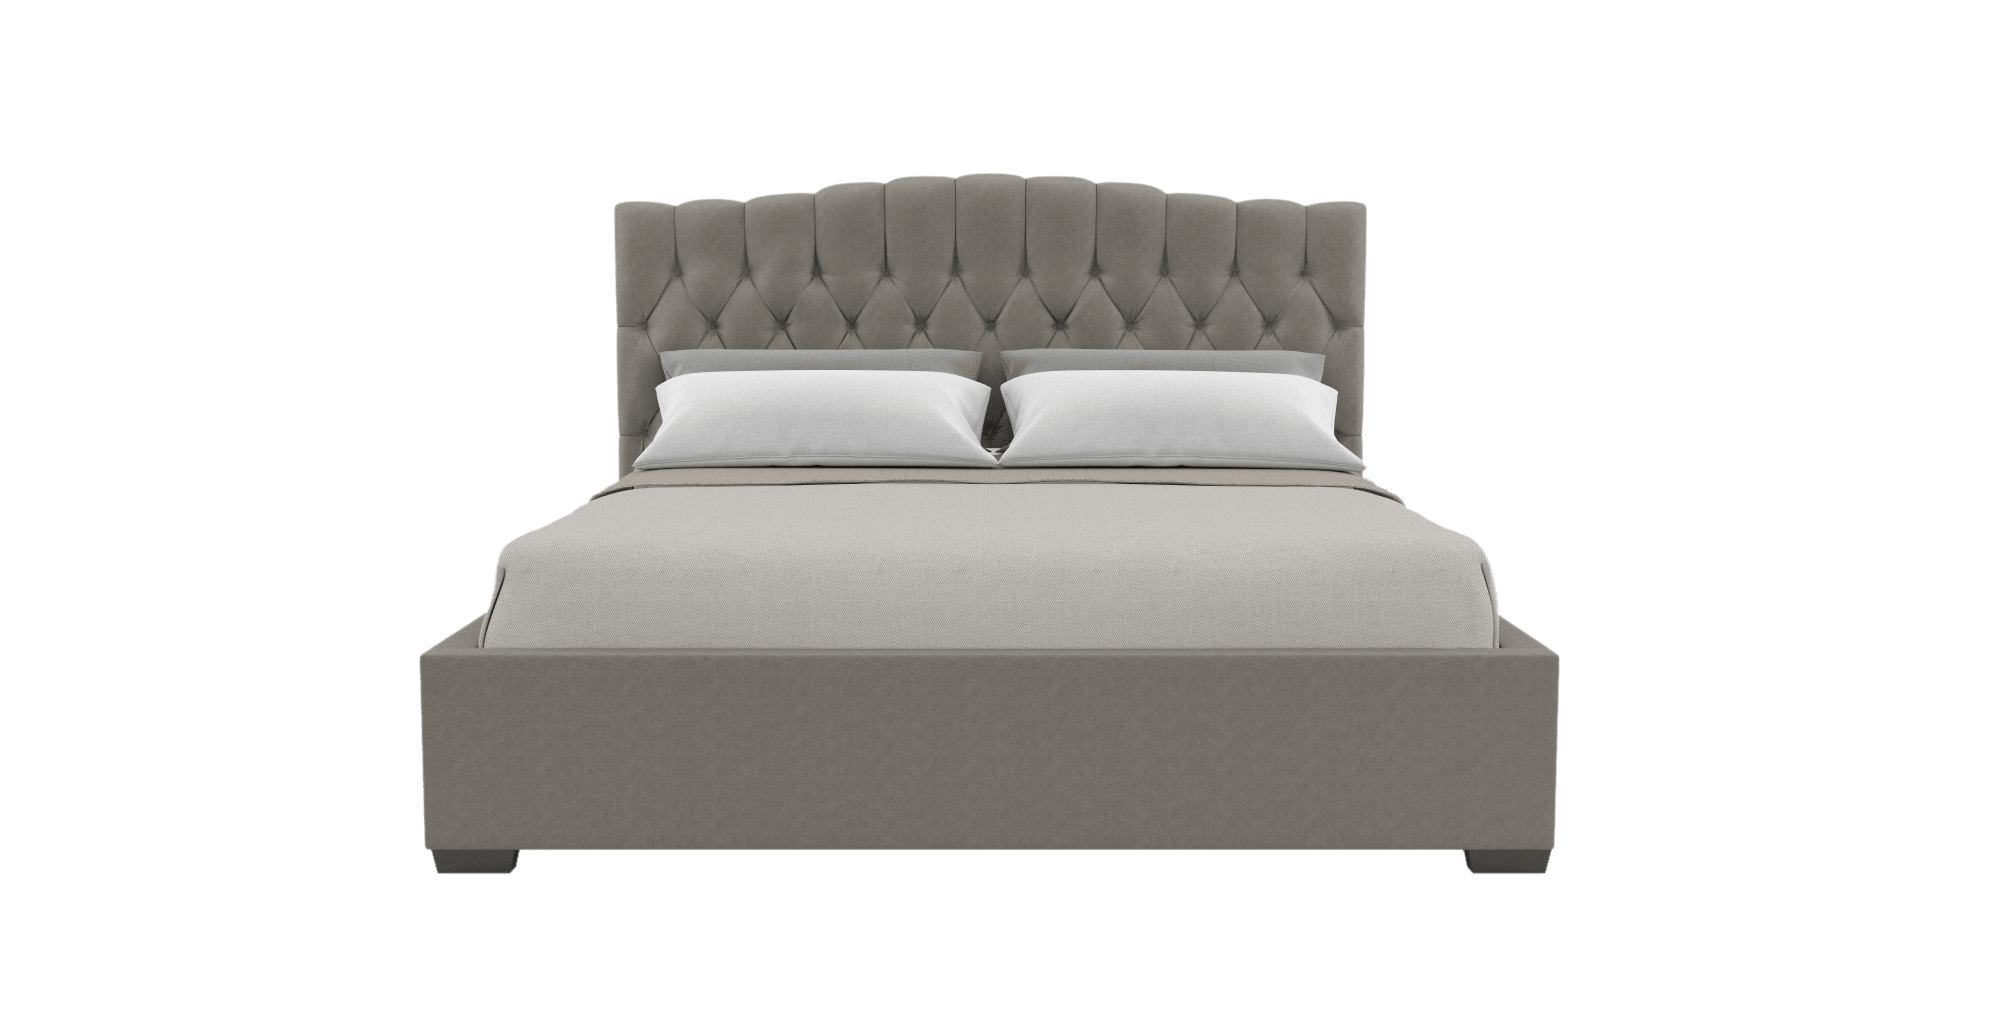 Buy Hannah Gas Lift King Size Bed Frame Online in Australia | BROSA